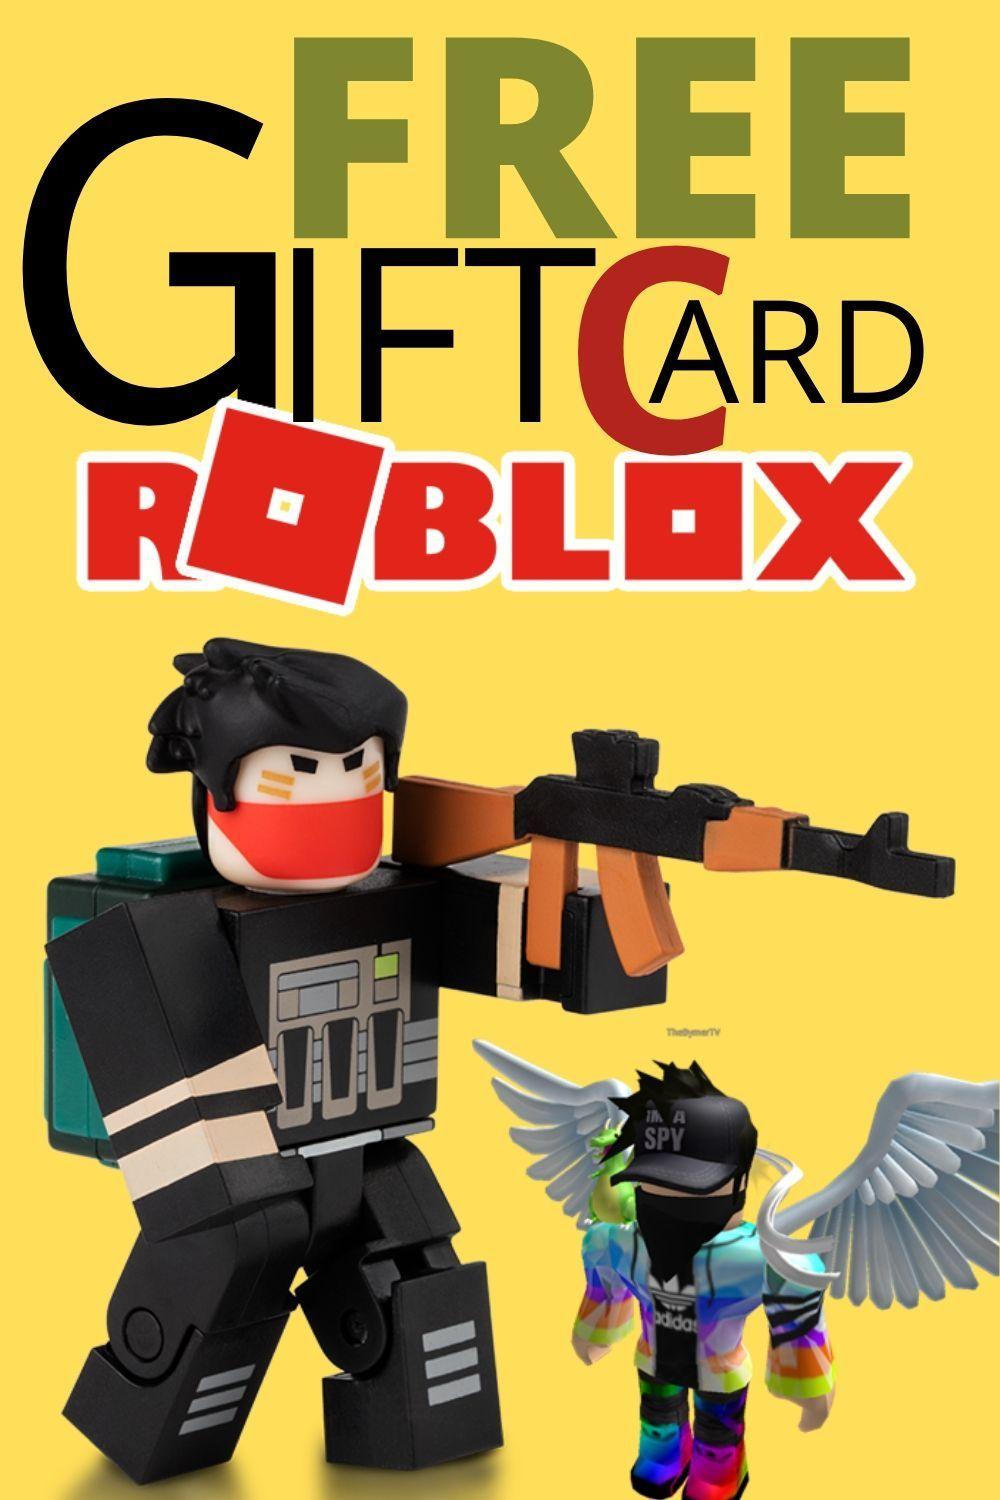 Free roblox gift card codes discord Roblox gifts Roblox Free